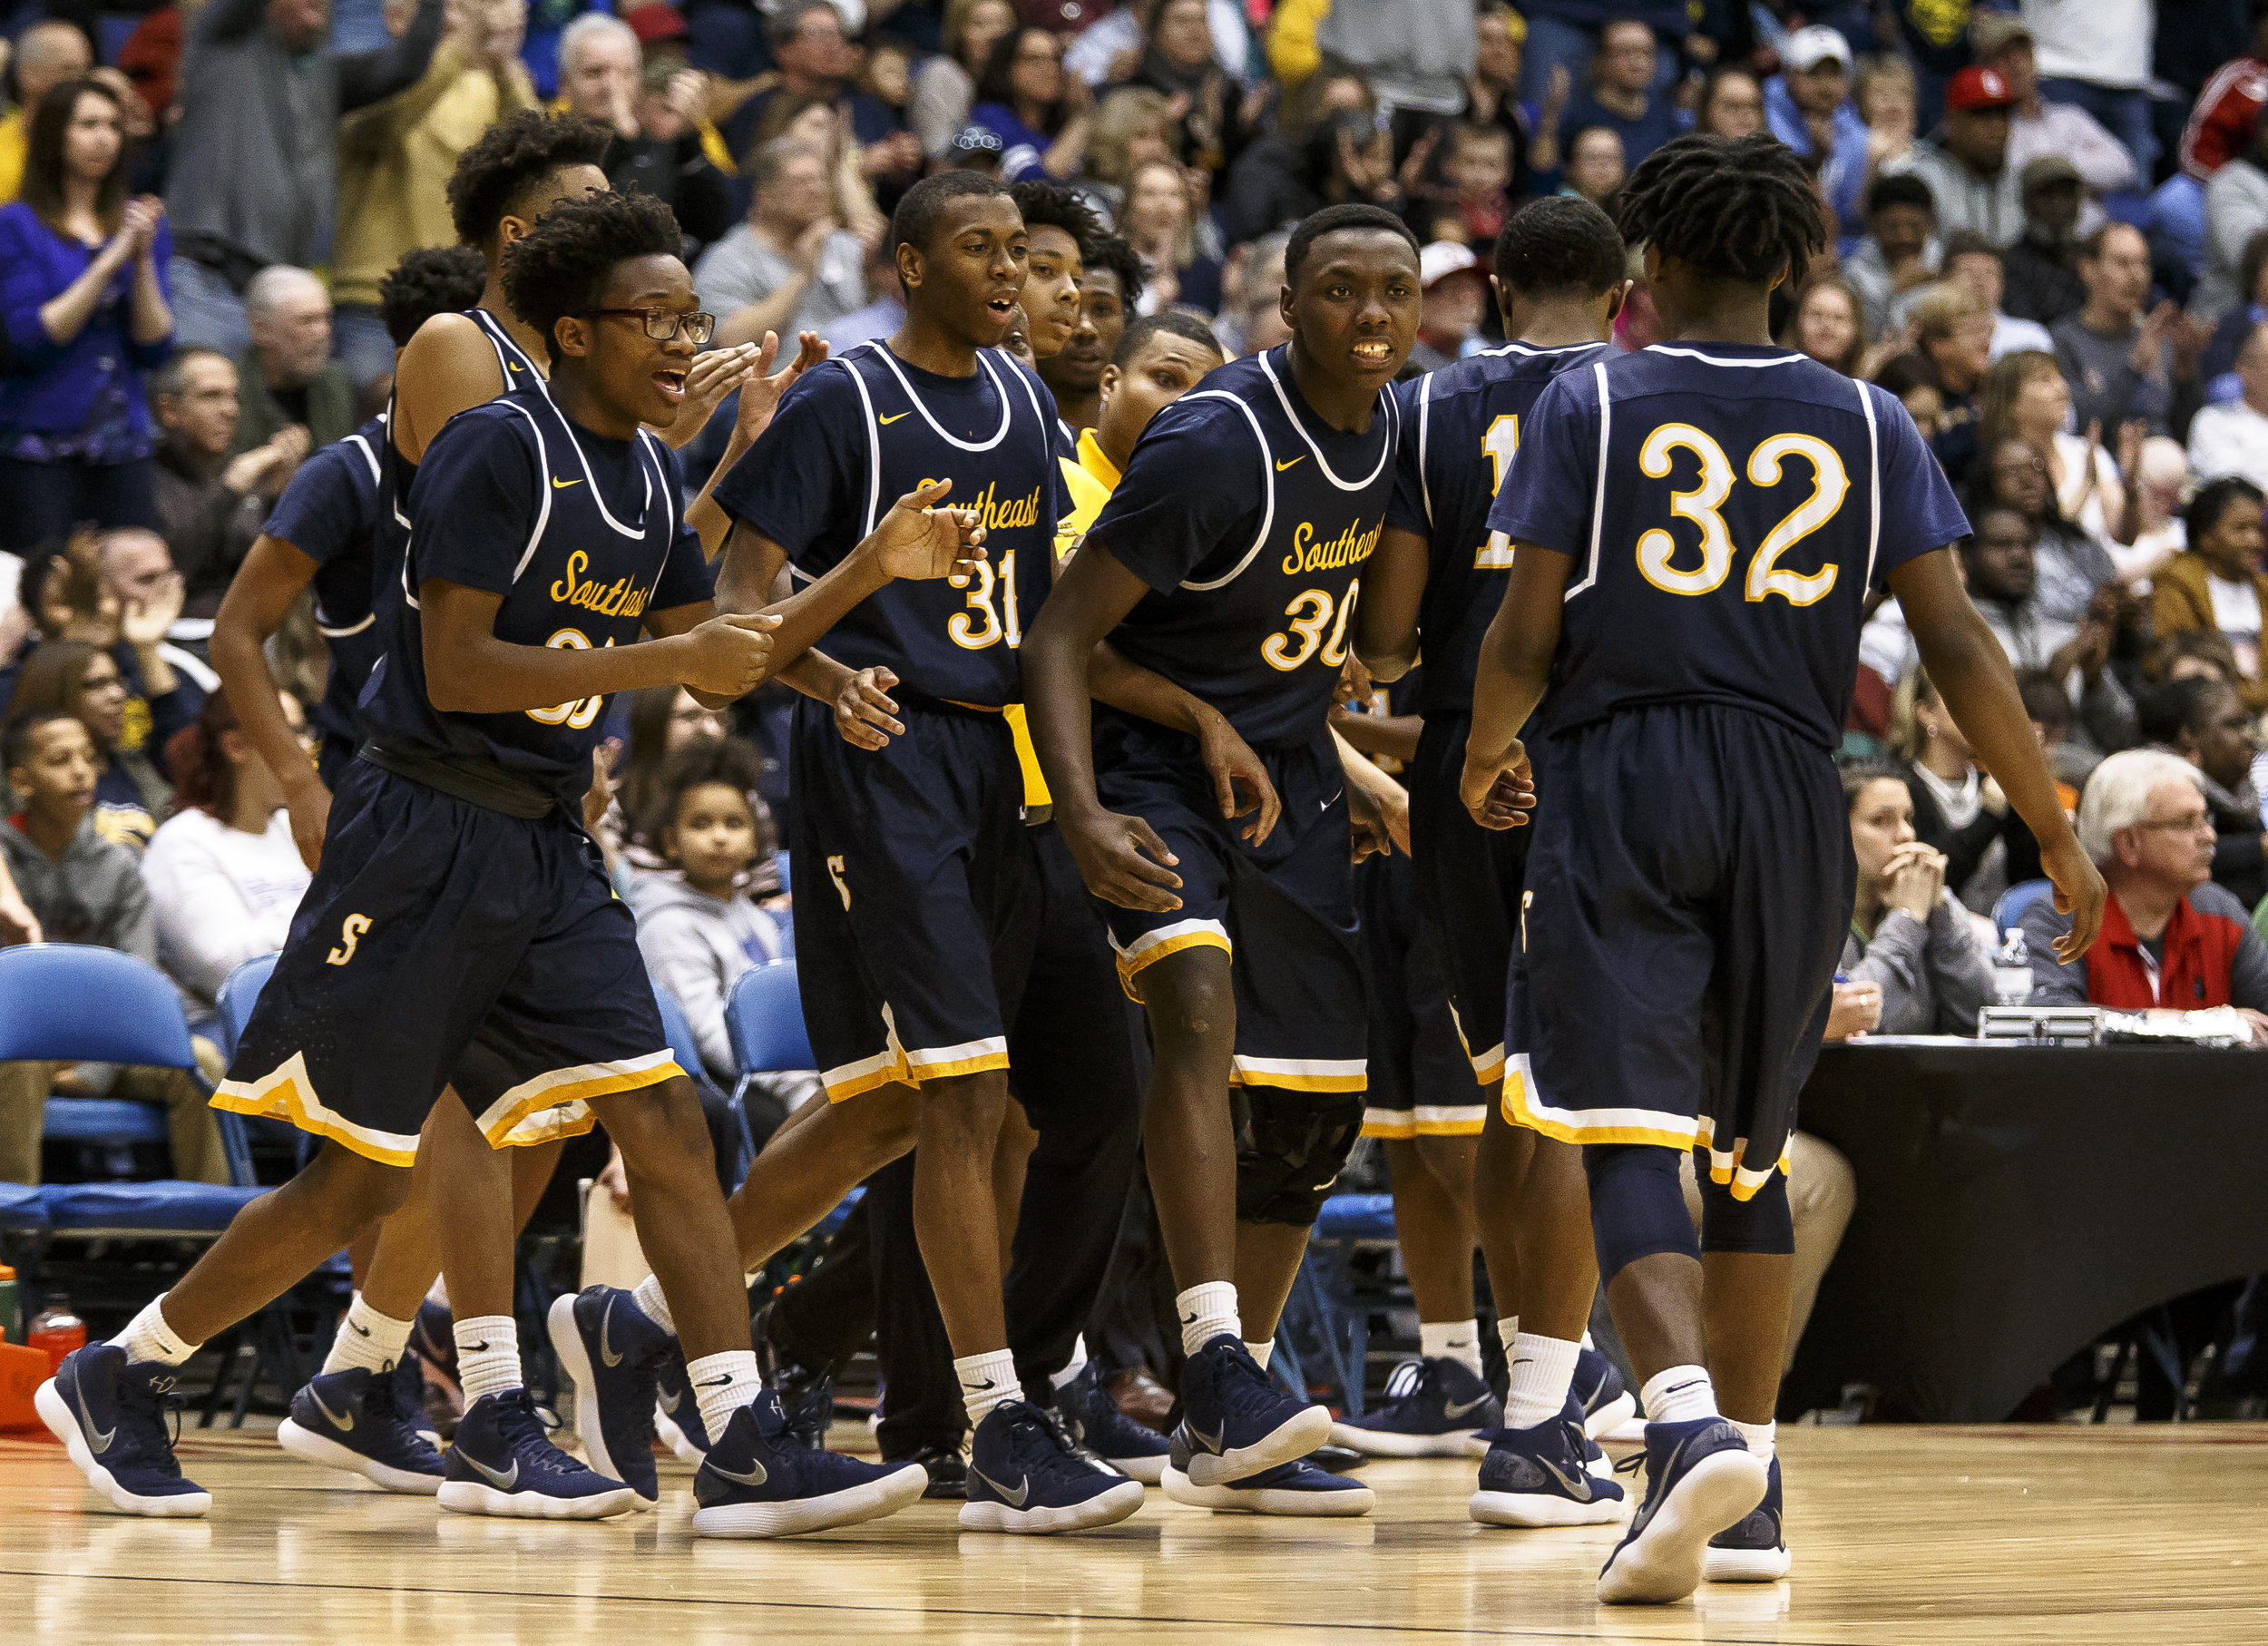 The Southeast bench congratulates Southeast's Stepheon Sims (32) after a basket and a time out from Marion in the second half during the Class 3A Springfield Supersectional at the Bank of Springfield Center, Tuesday, March 13, 2018, in Springfield, Ill. [Justin L. Fowler/The State Journal-Register]